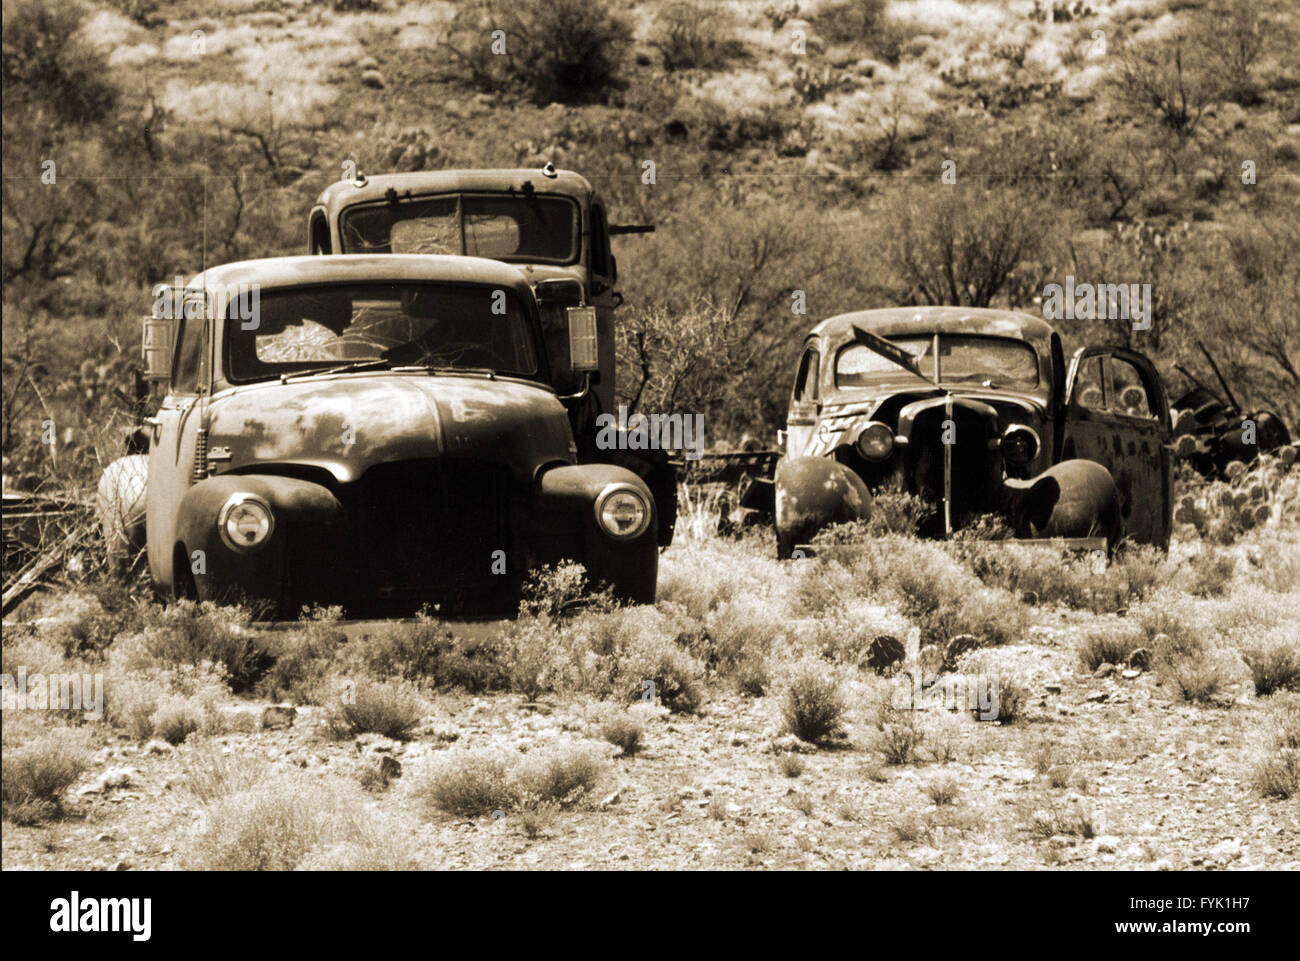 Rotting 1950\'s classic cars & trucks litter the landscape at rural ...